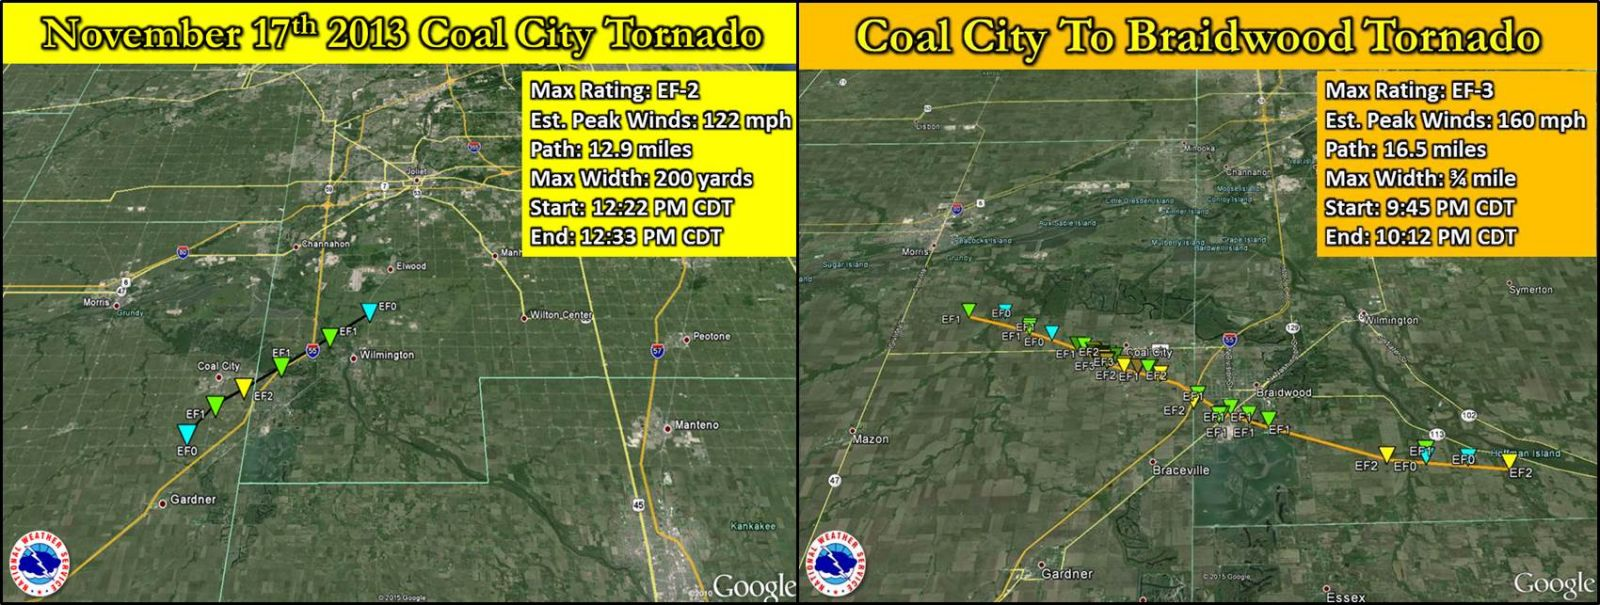 Coal City Comparison